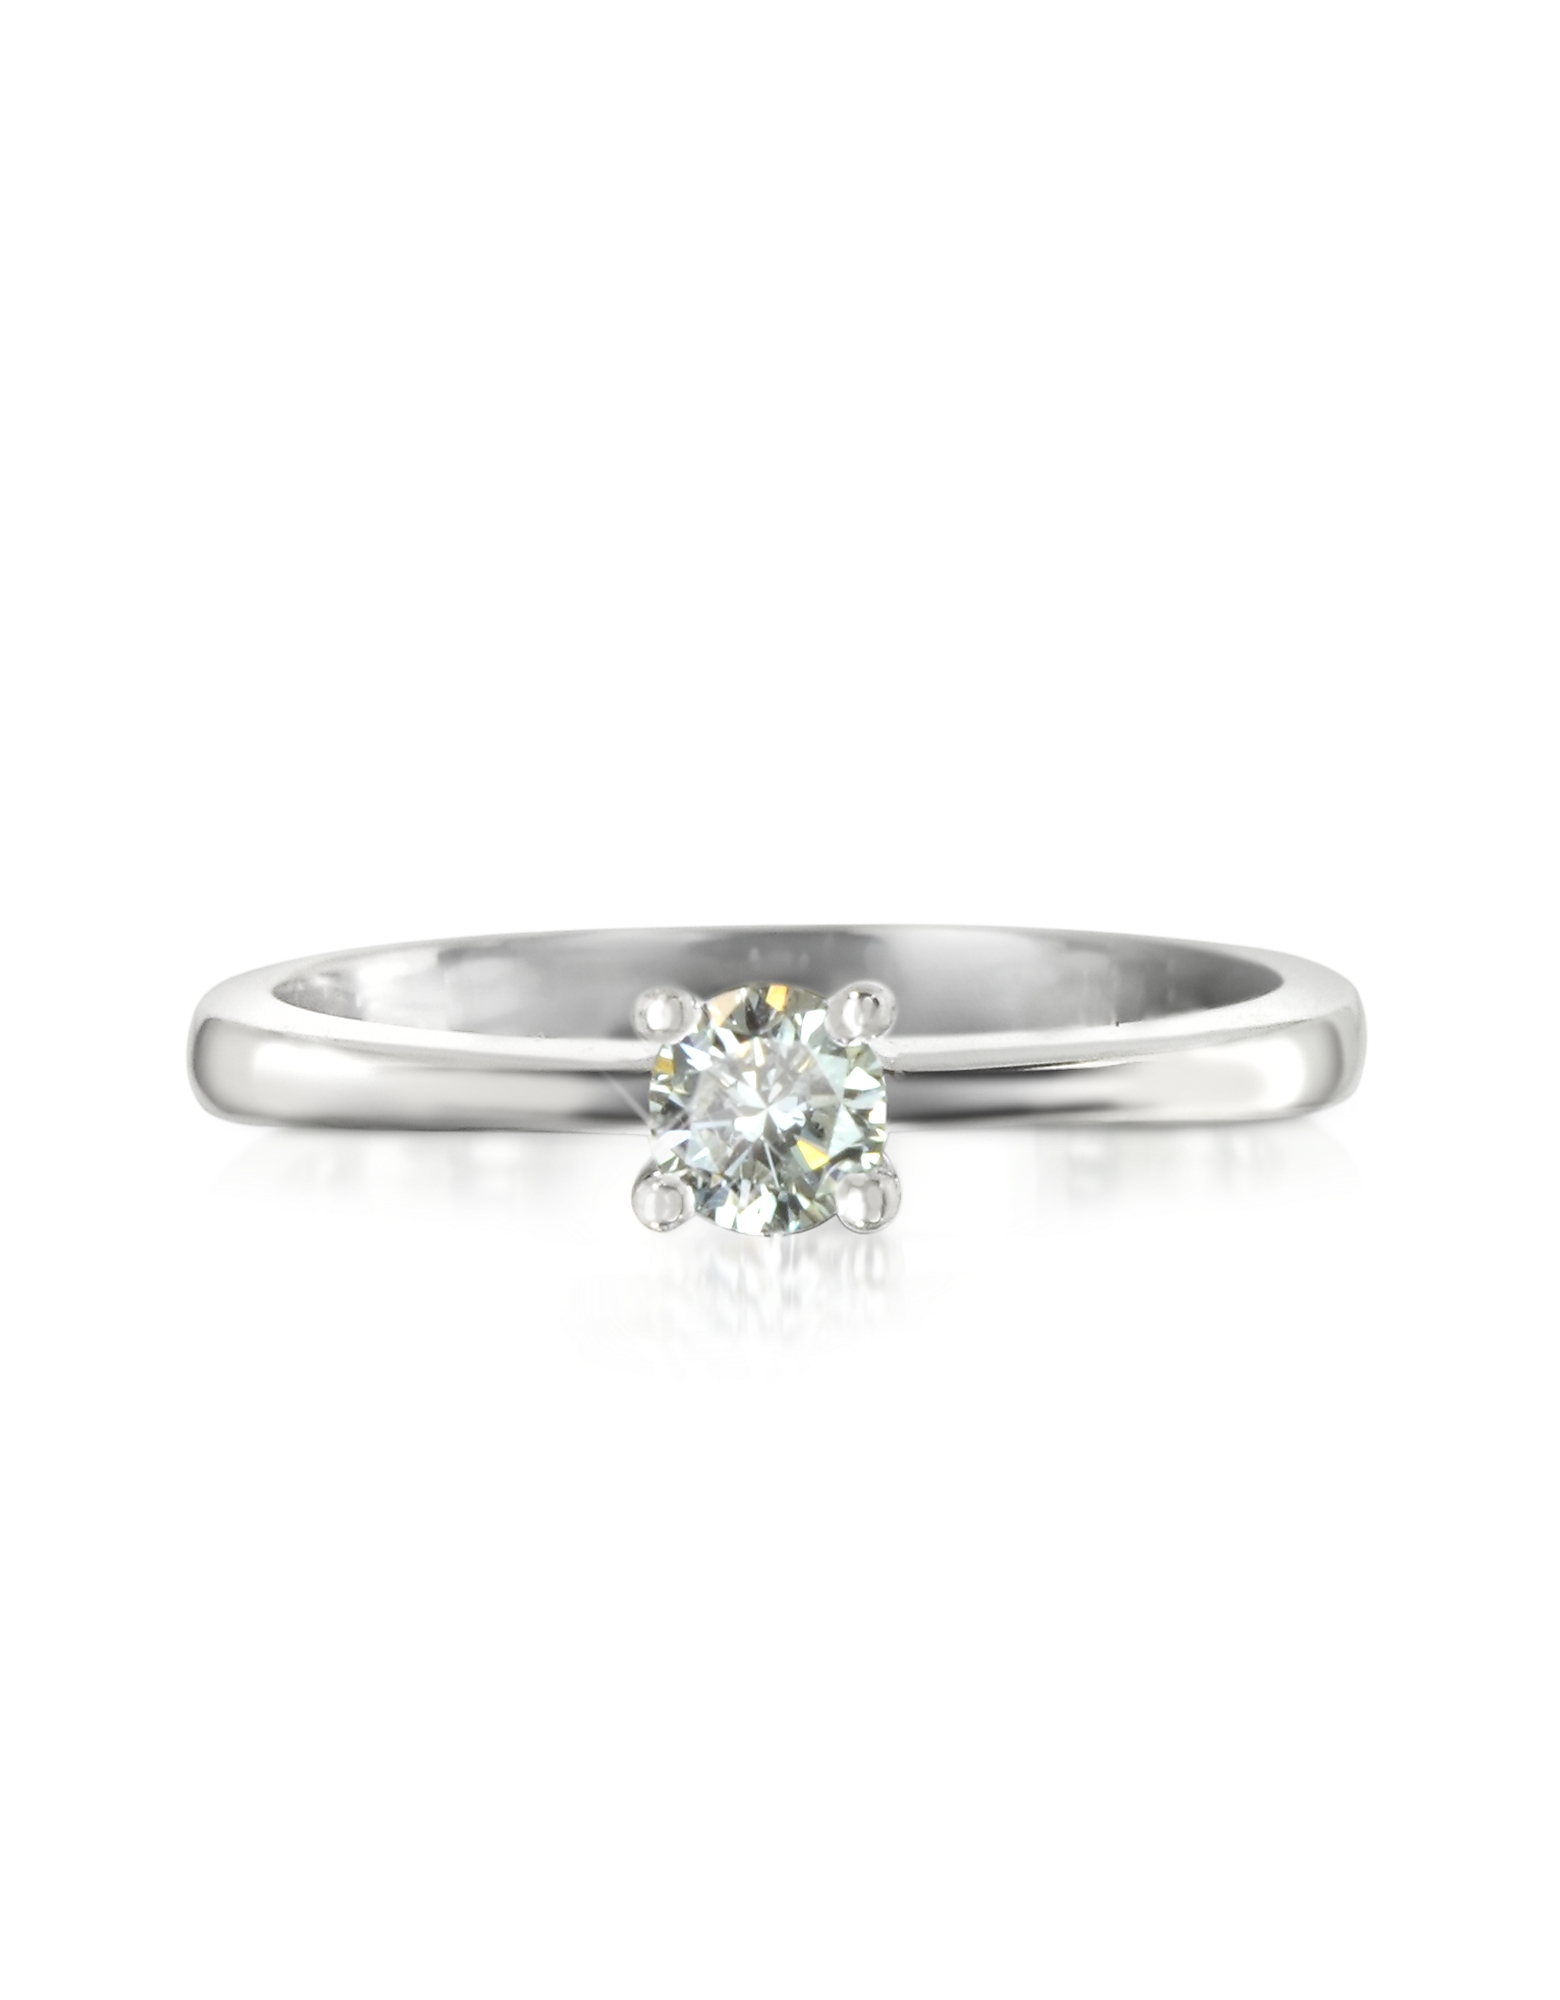 Forzieri Rings, 0.23 ctw Diamond 18K White Gold Solitaire Vanity Ring